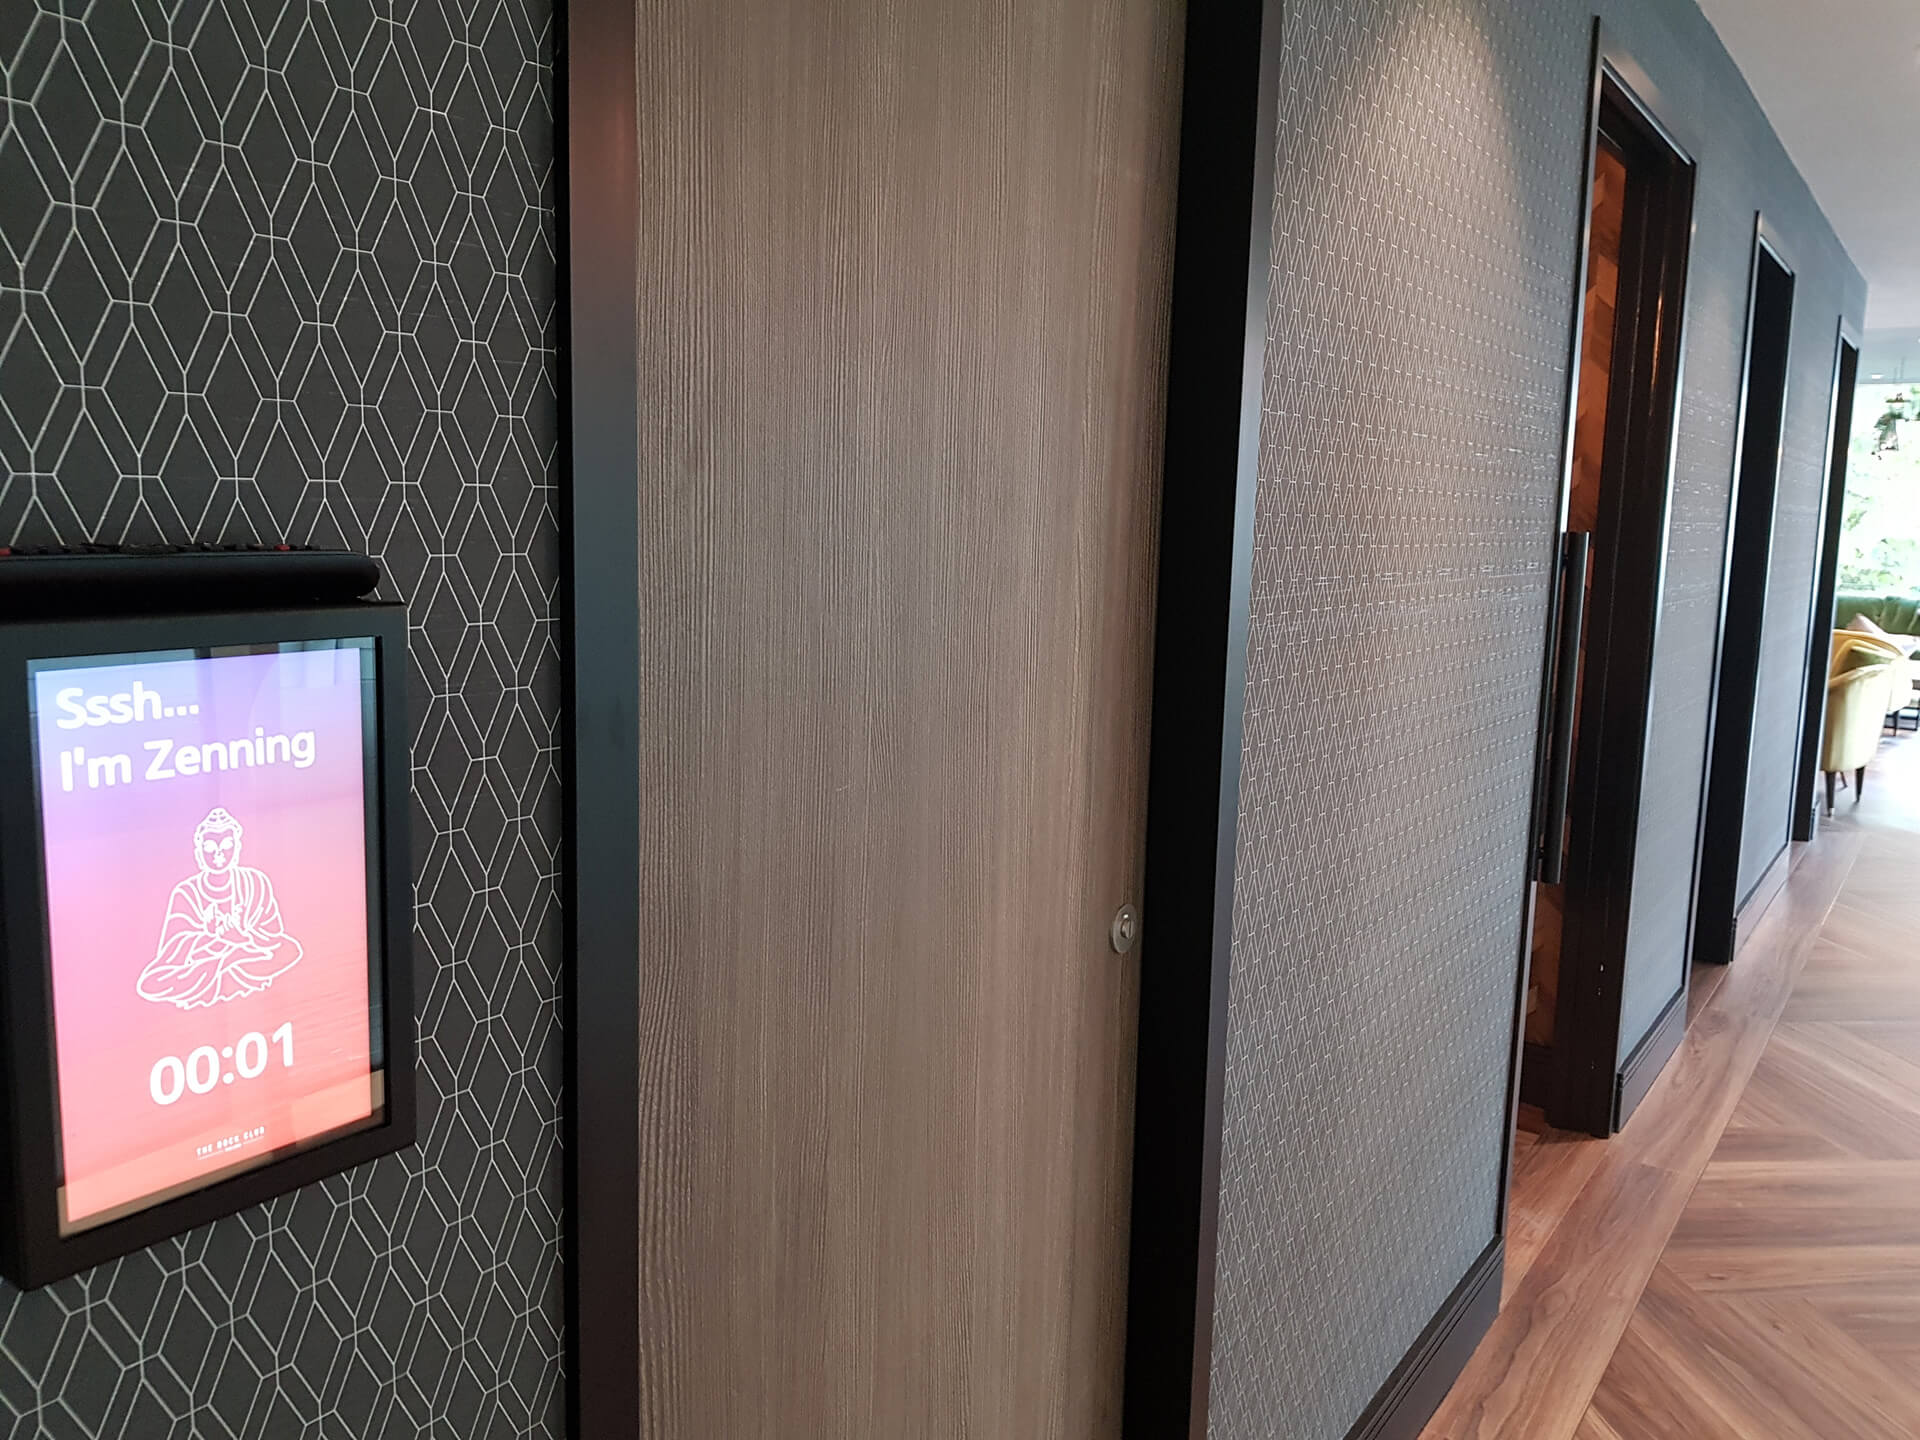 Eclipse Digital Media - Digital signage and AV Solutions - Clarendon Business Centres - Zen Room